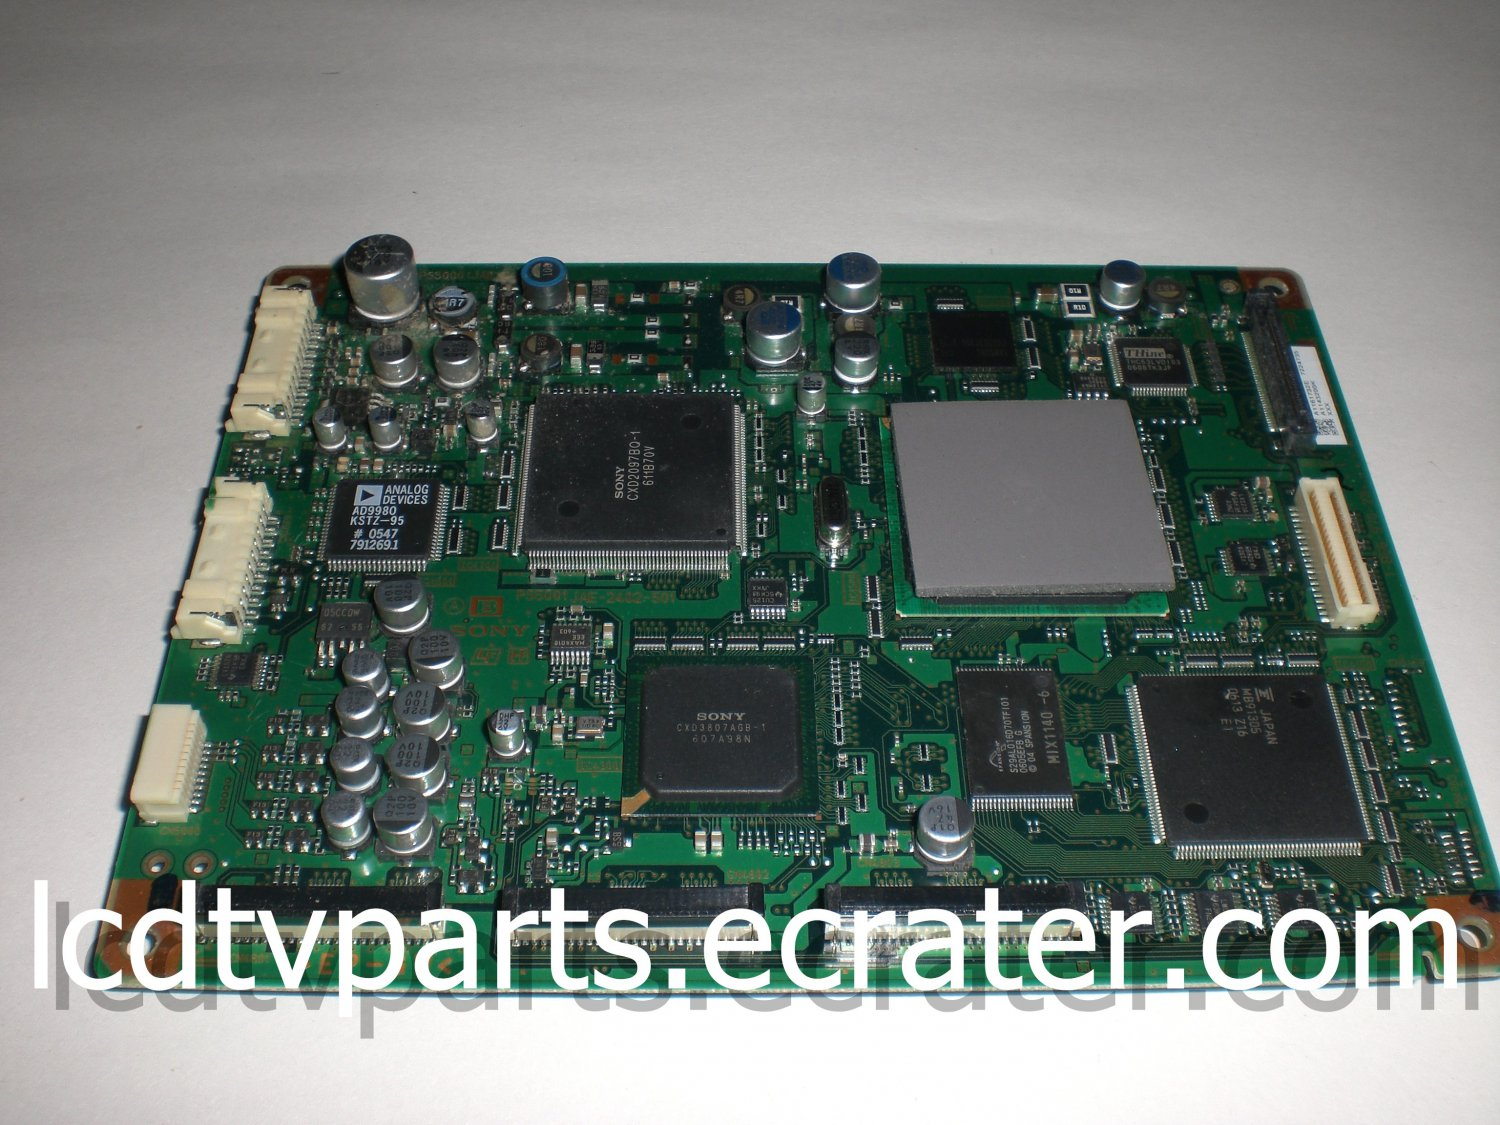 A1147797B, A-1147-797-B, A1161732E, A1143299K, 1-866-970-23, Main Board for Sony KDL-V40XBR1